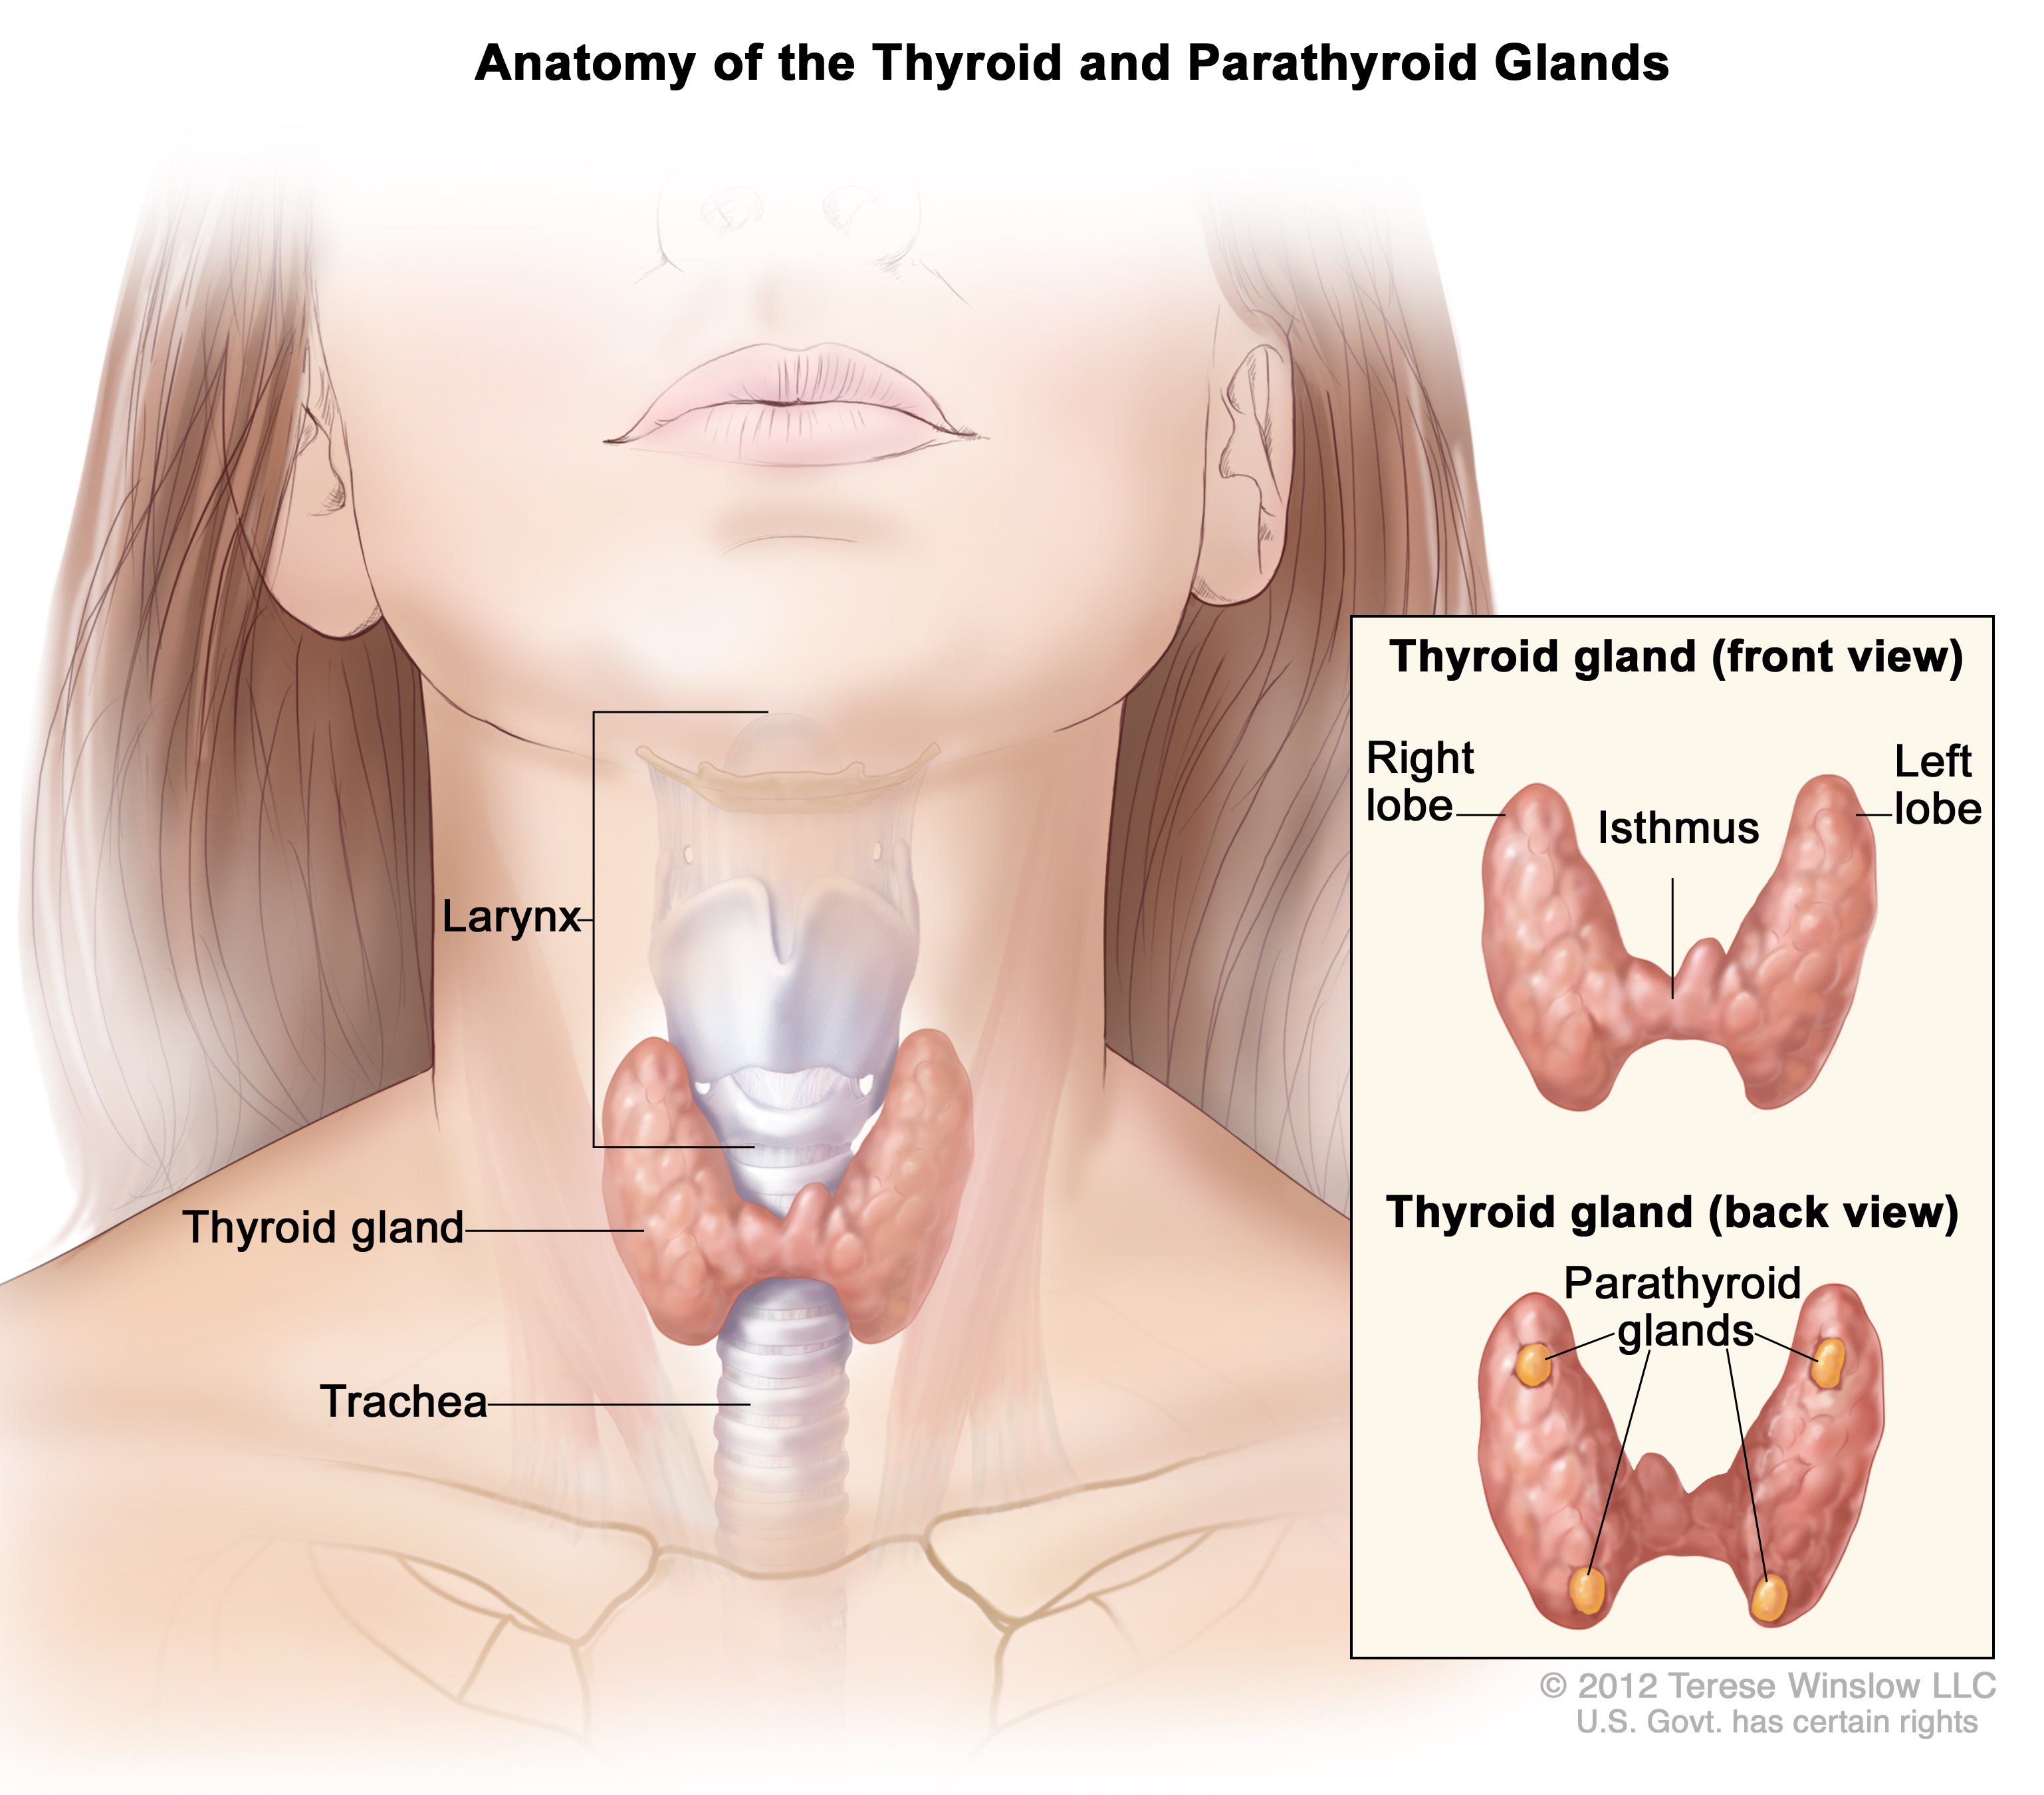 Anatomy of the Thyroid and Parathyroid Glands